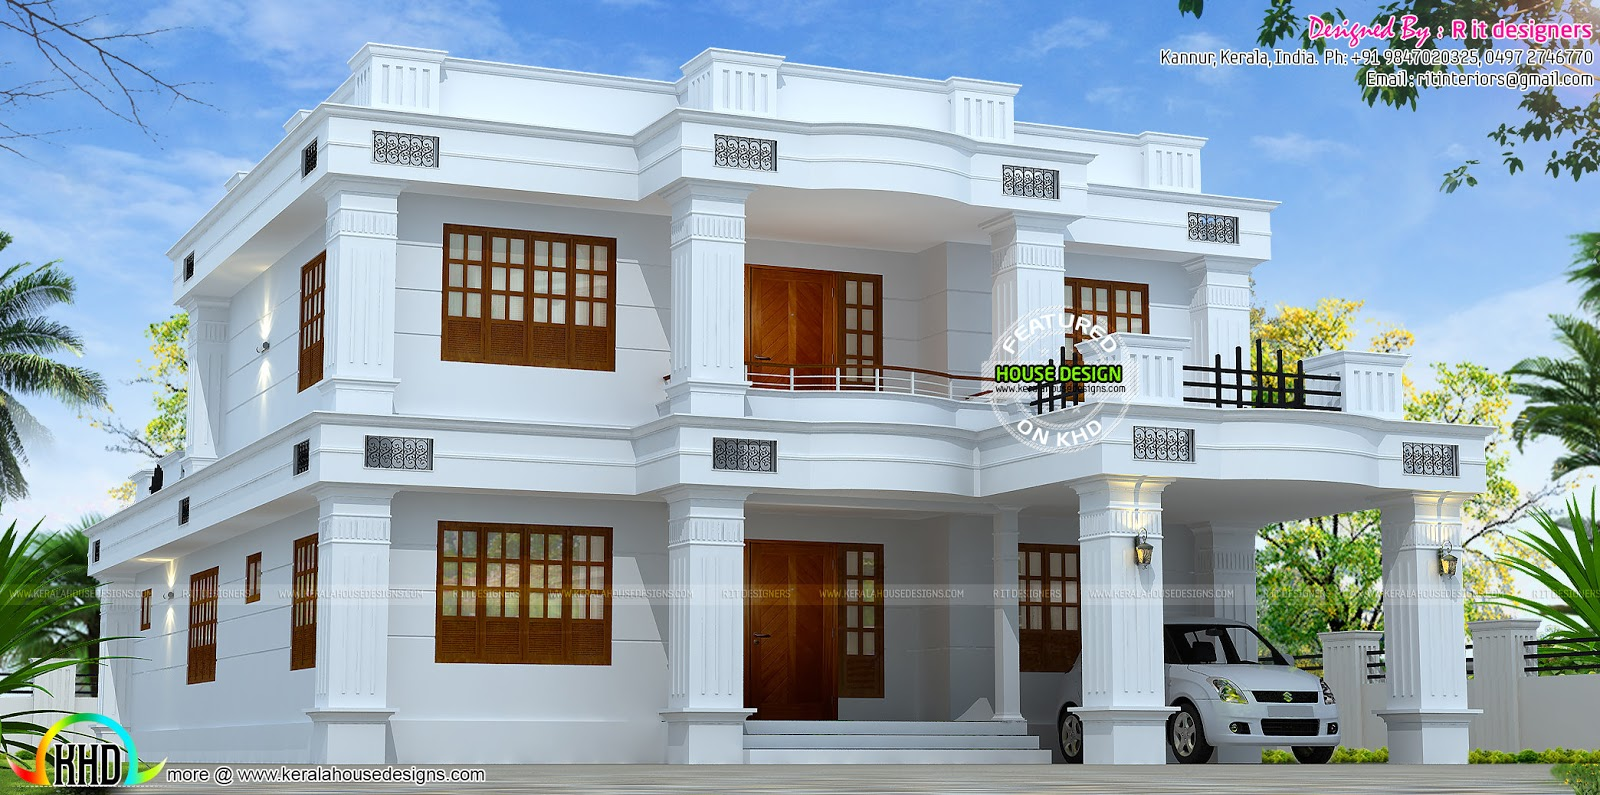 February 2016 kerala home design and floor plans for House plans with photos in kerala style